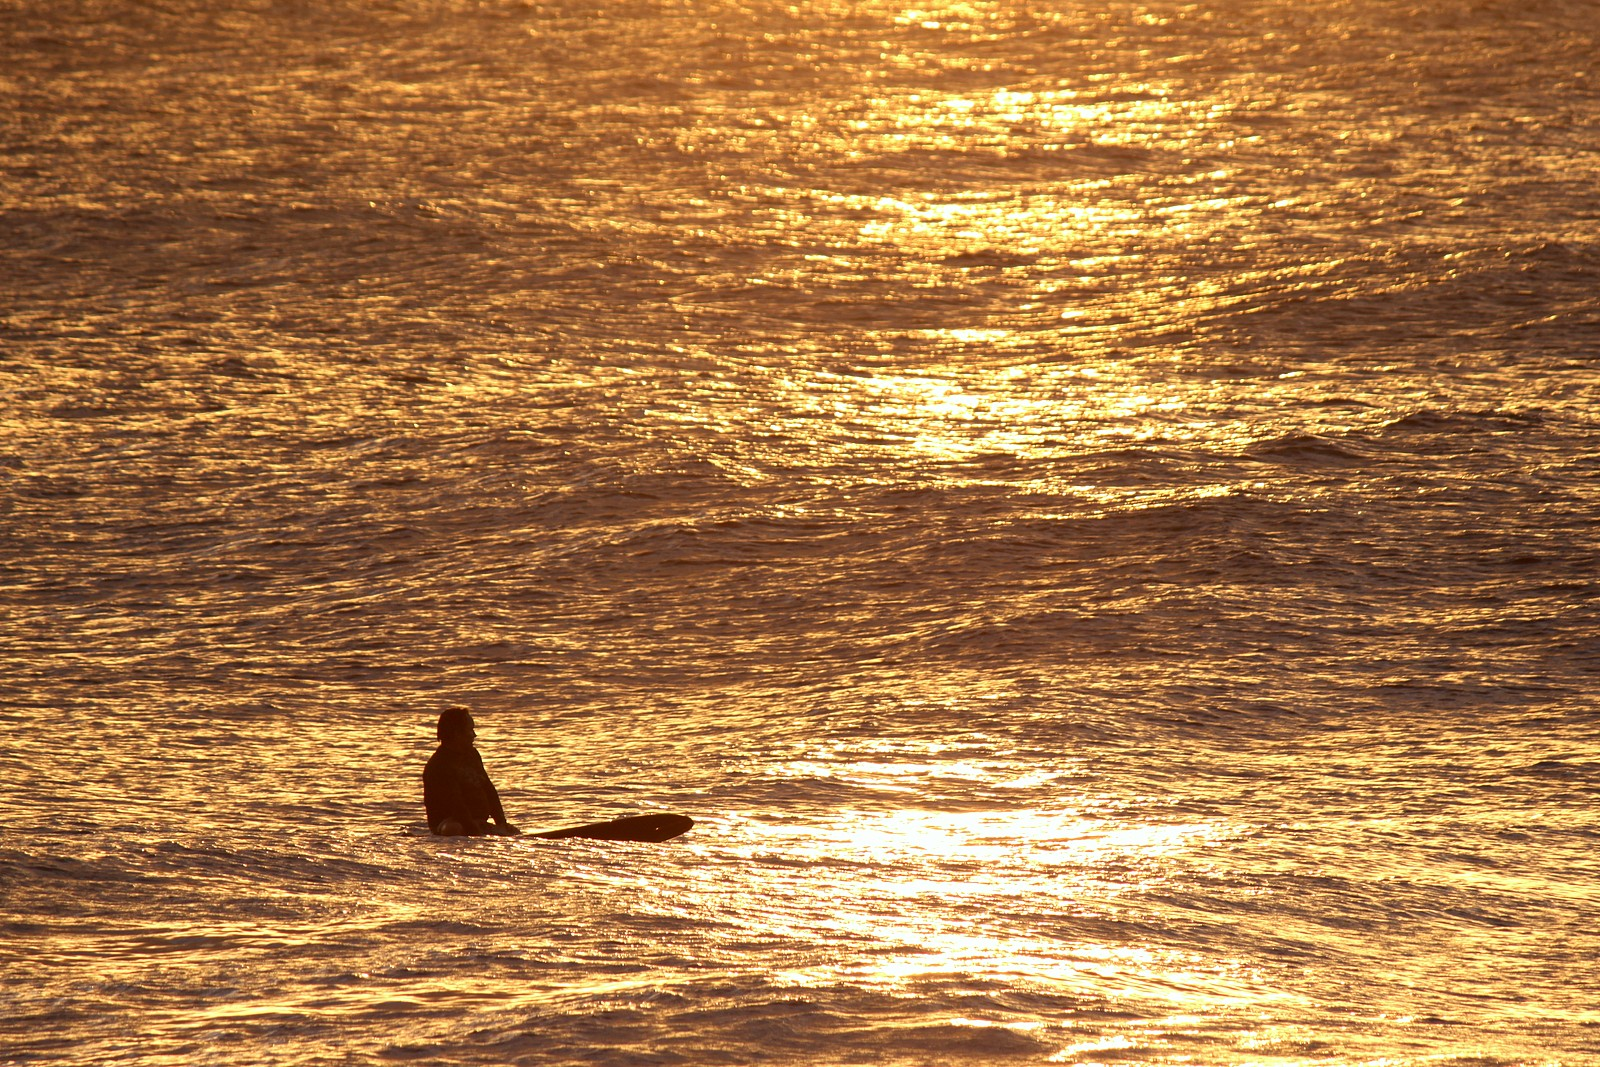 Surfing the North Shore at Sunset